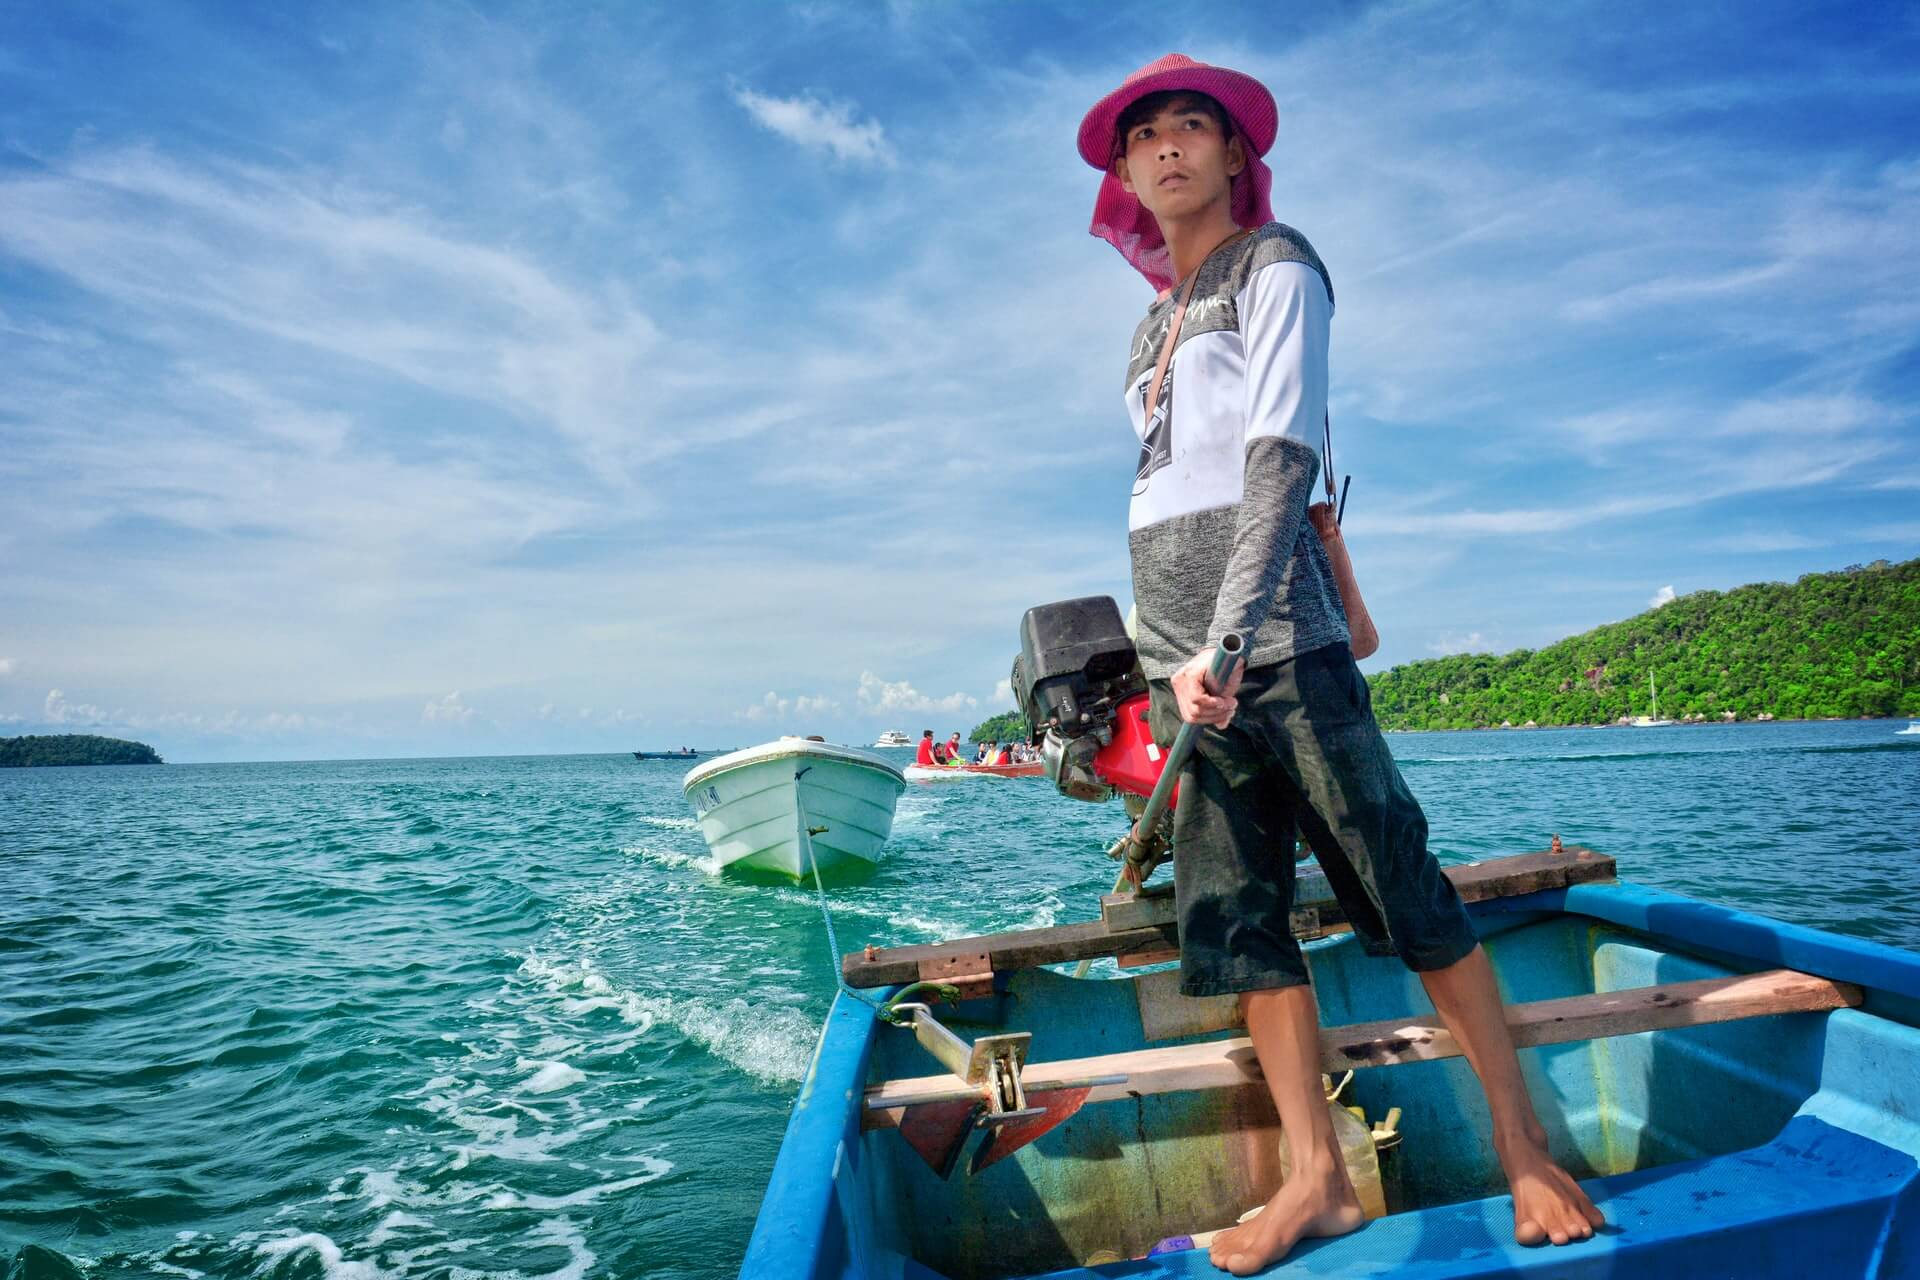 A Khmer boy ferries a backpacker in Cambodia to Koh Rong Sanloem